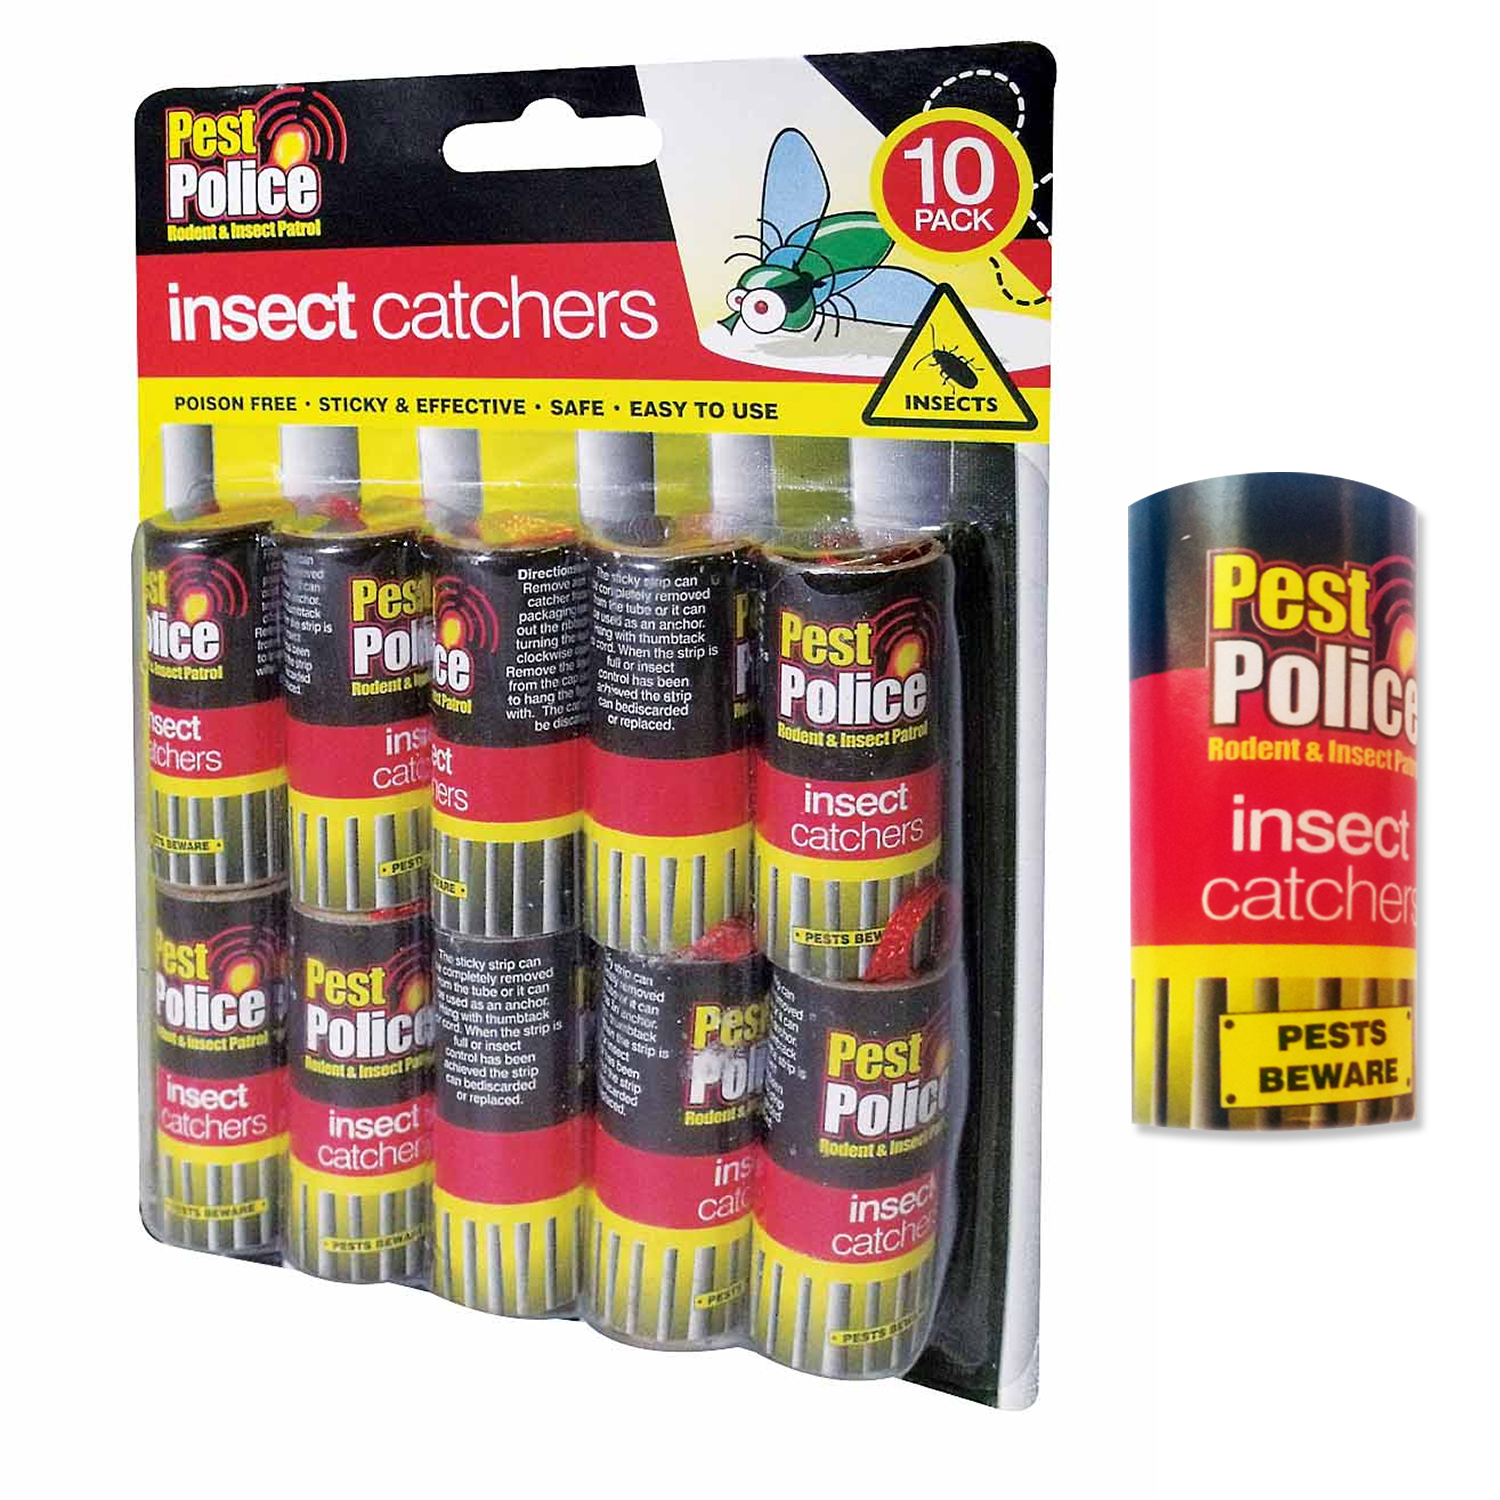 Fly Paper Insect Control - Buy in Rolls or Packs of 10 Rolls - DISCOUNTS & DEALS